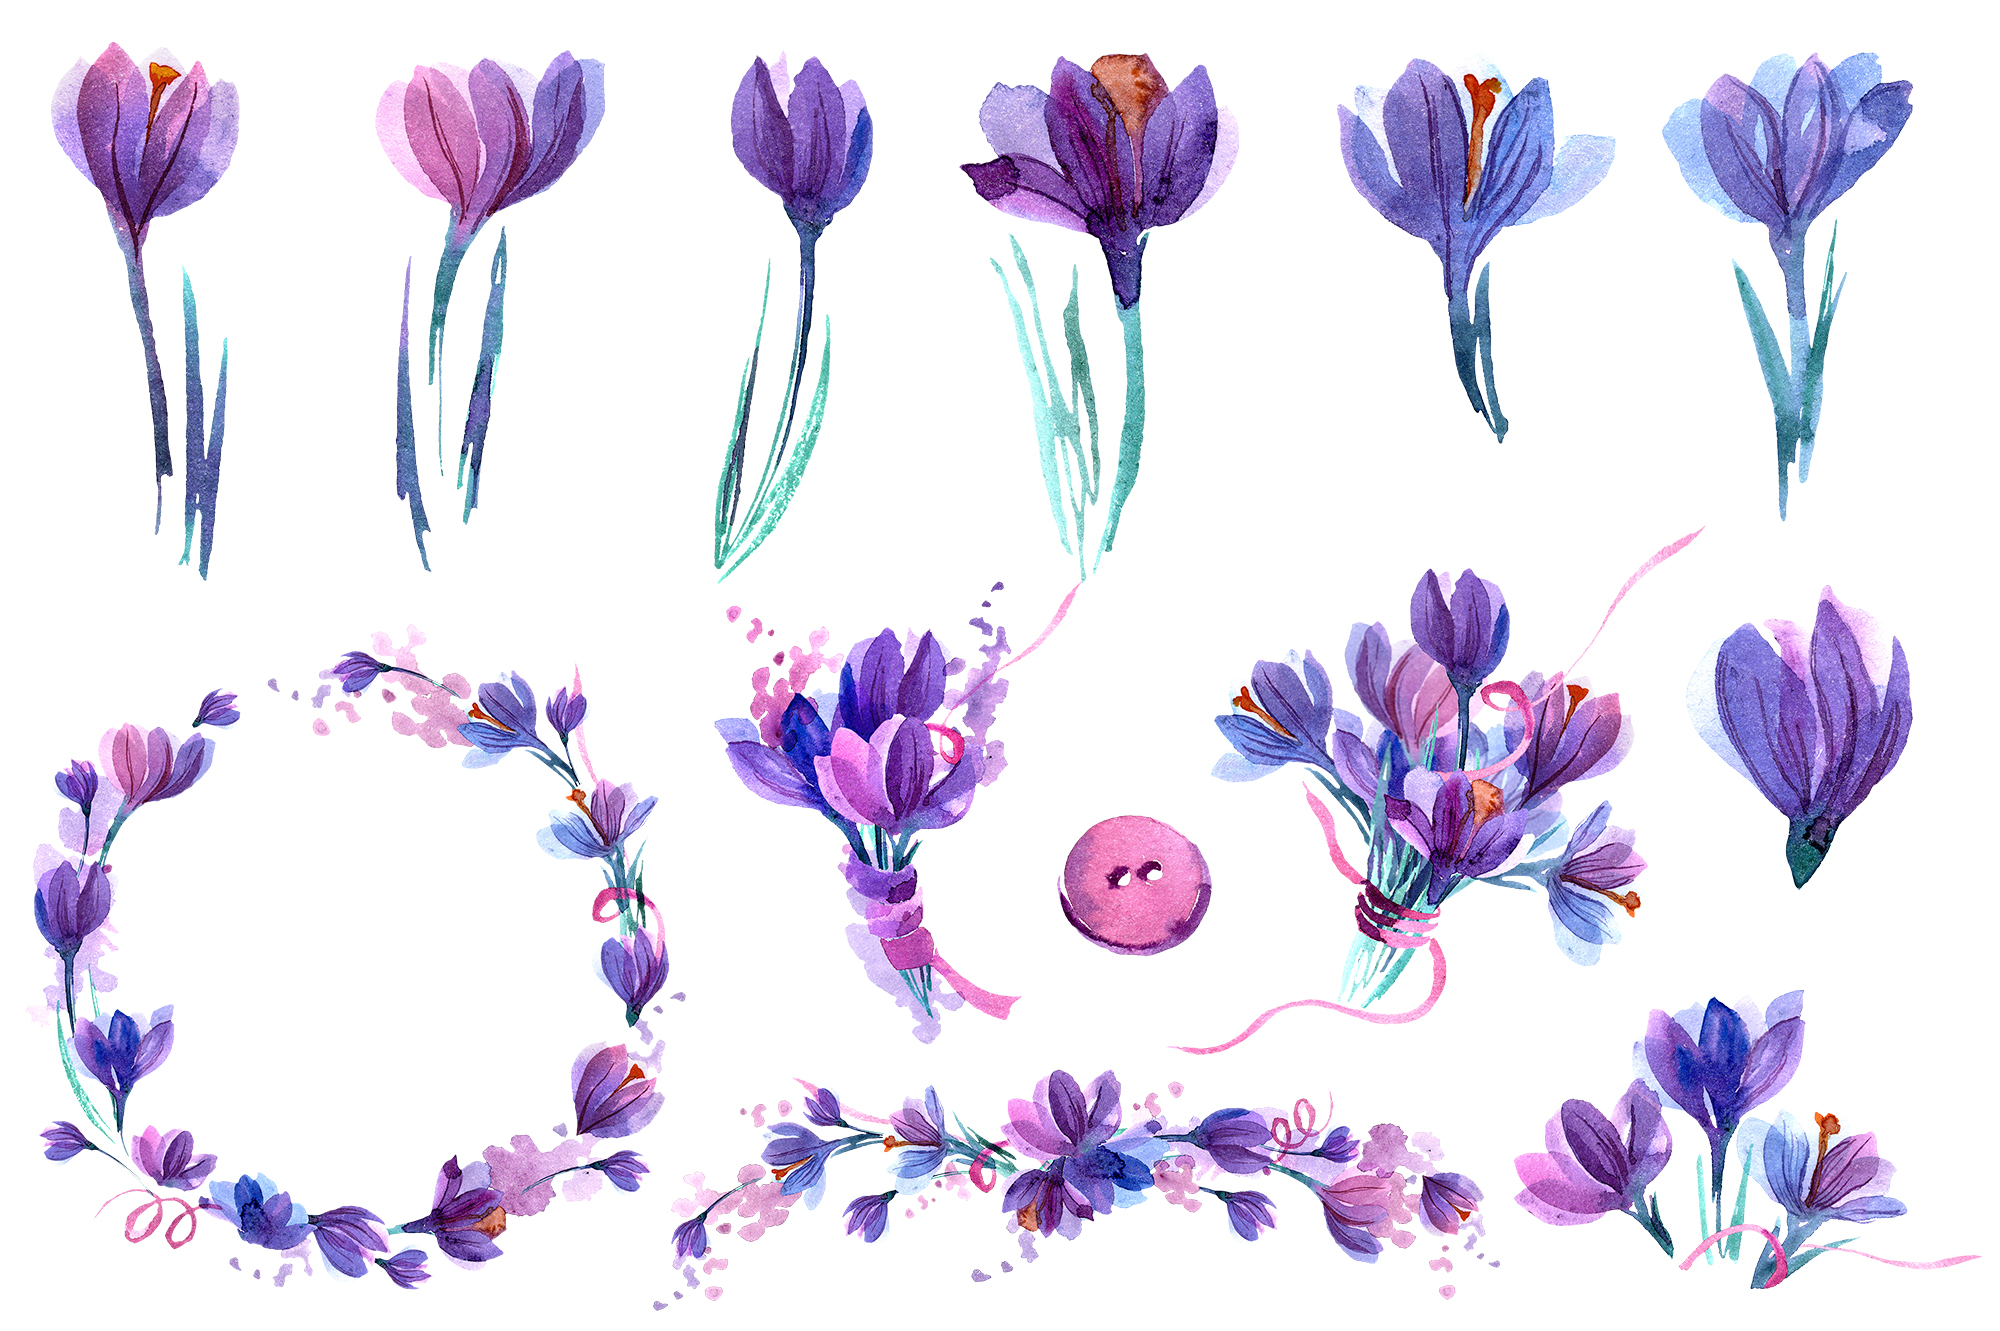 Watercolor crocuses and snowdrops example image 2